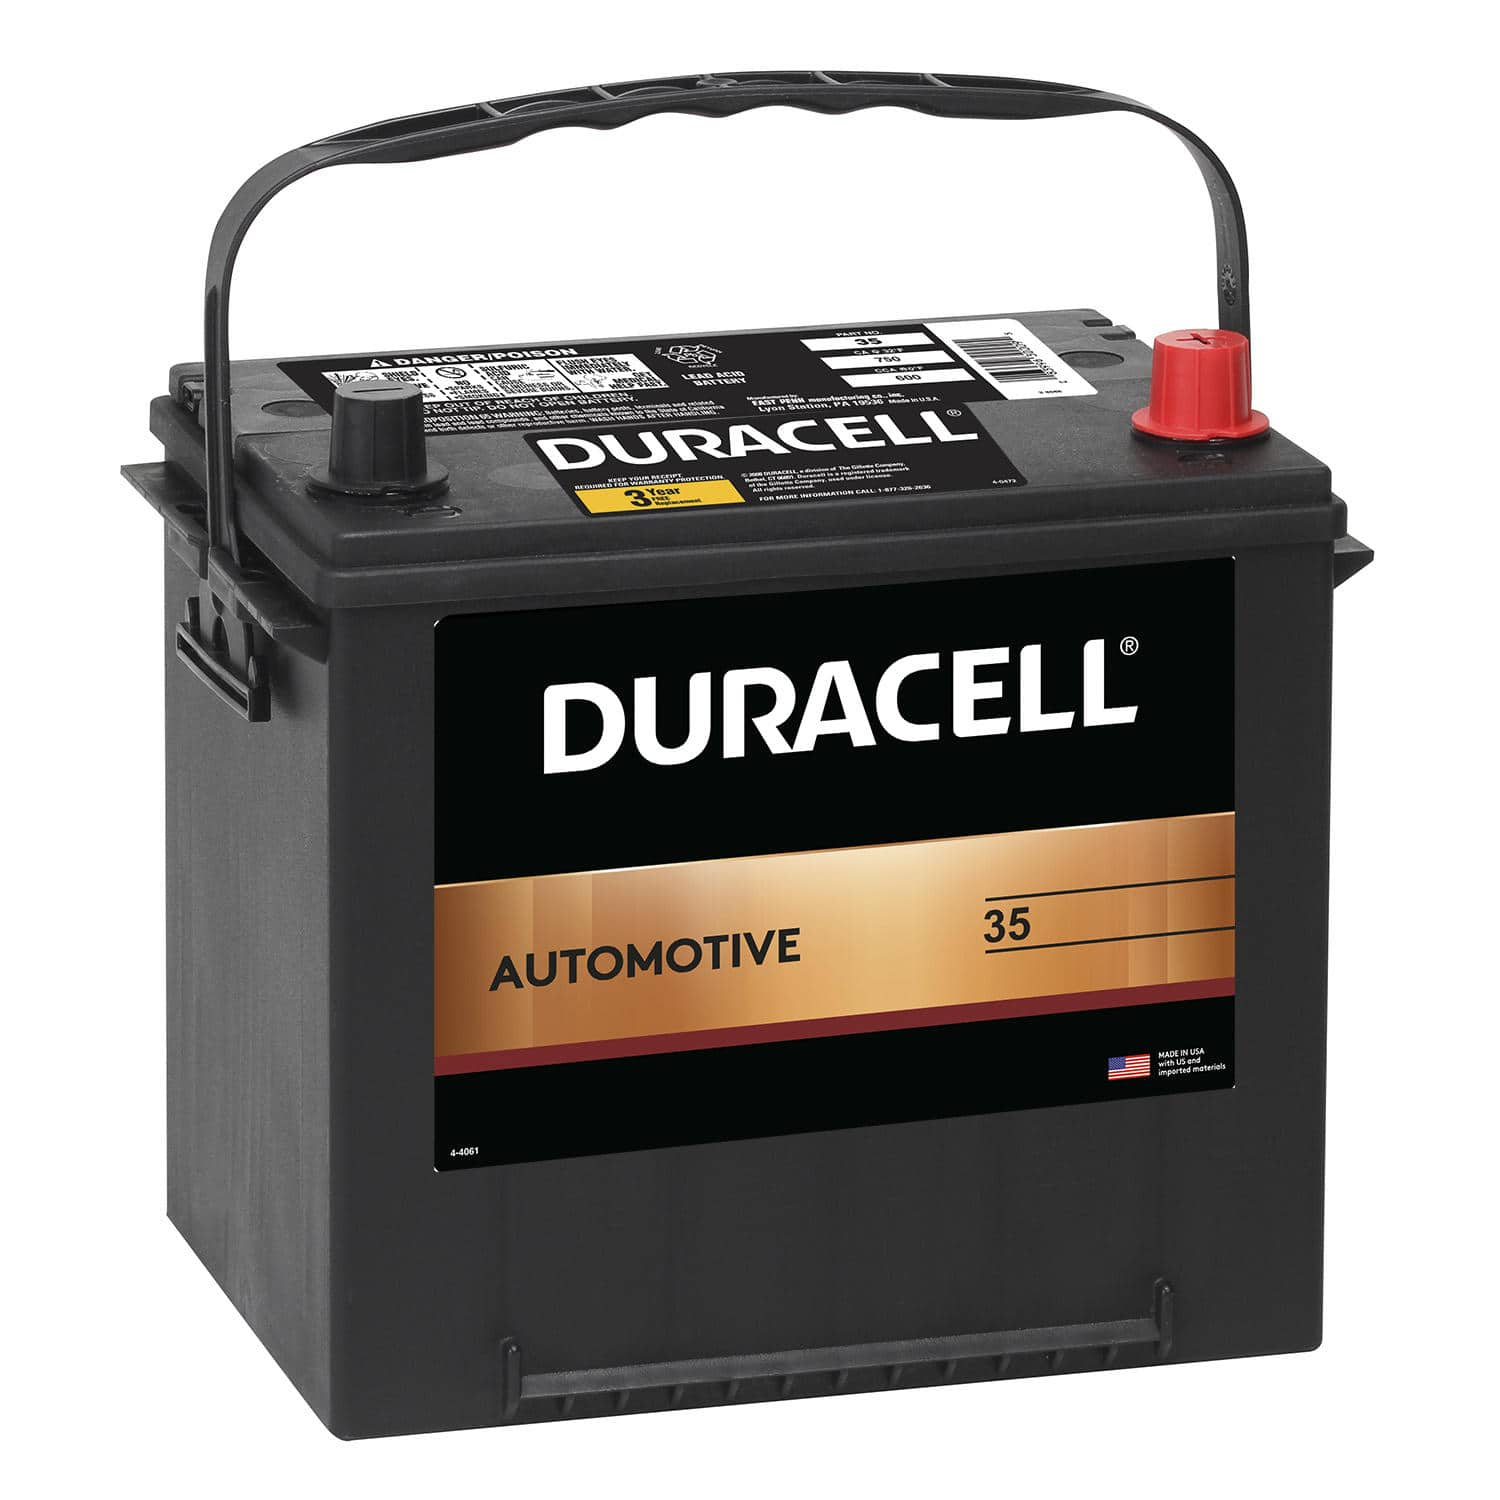 Sam's Club Duracell Automotive battery $20 off